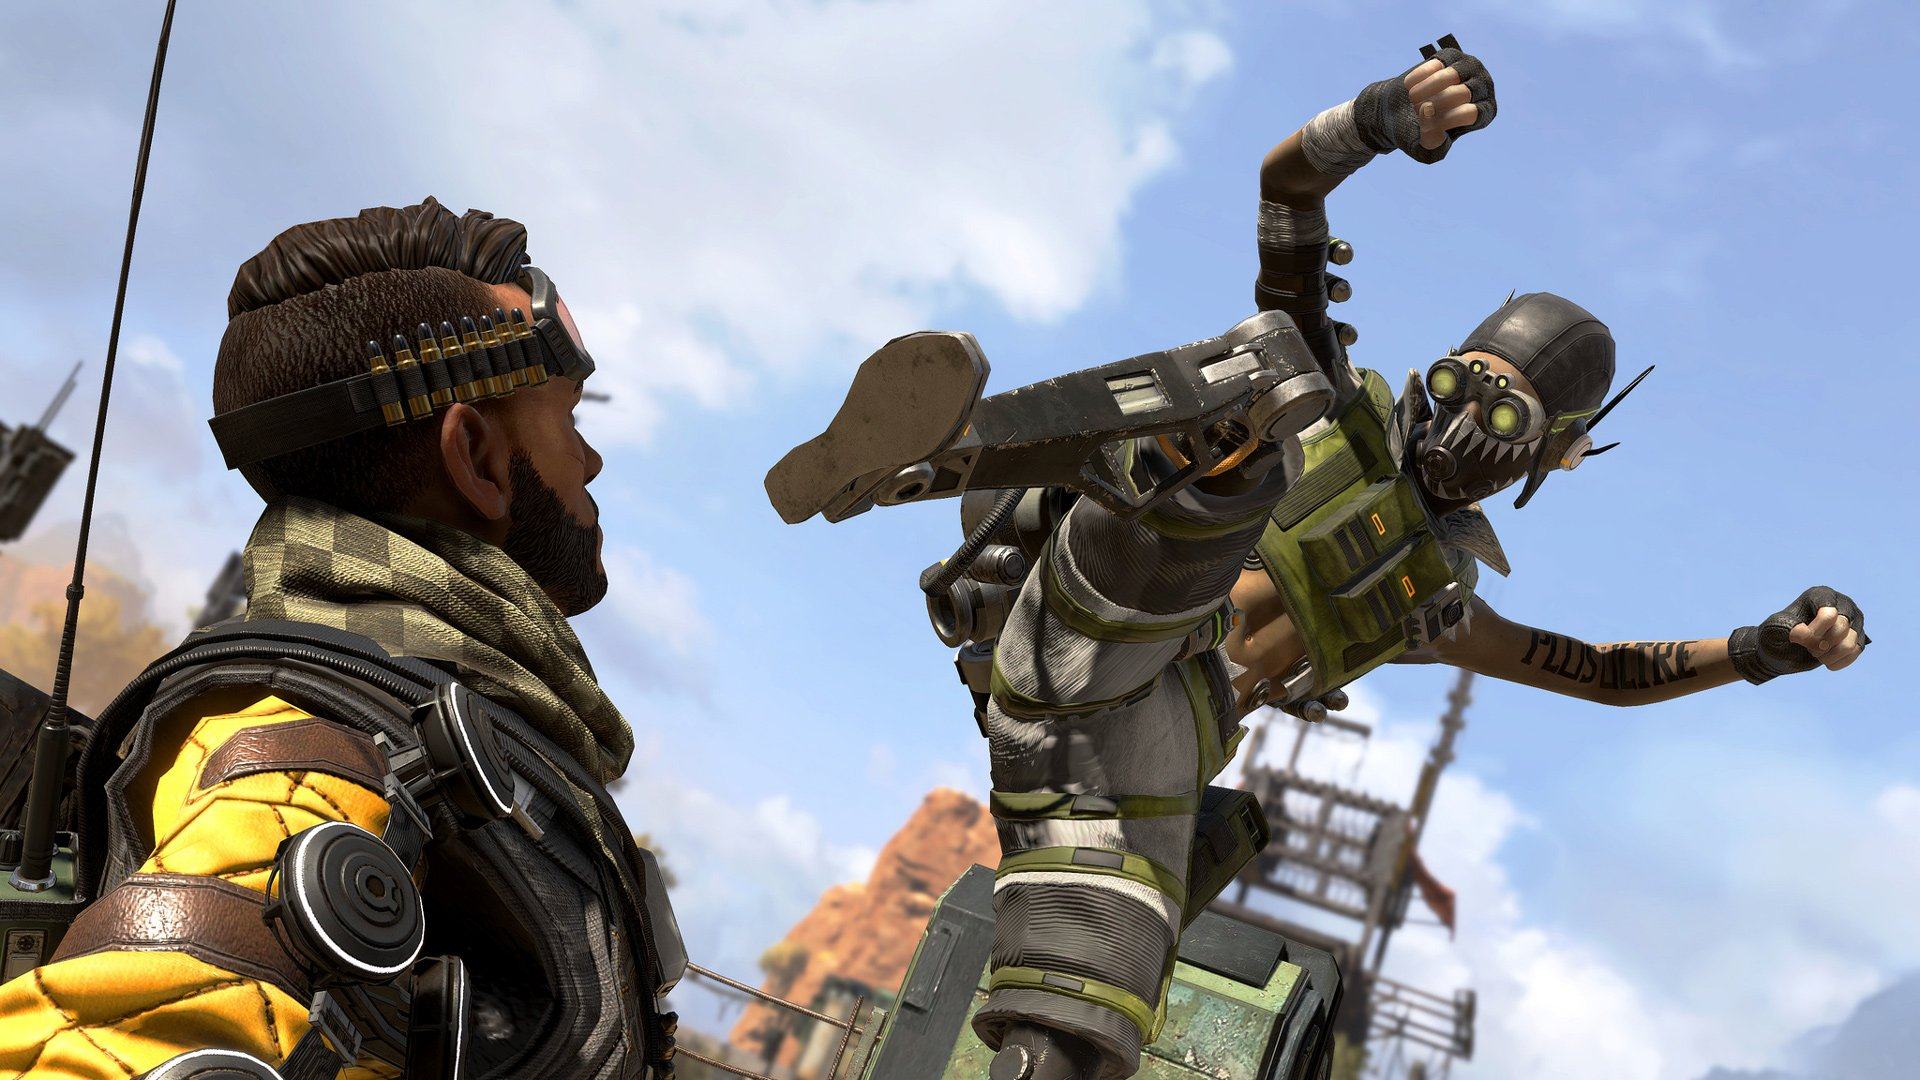 Apex Legends Season 1 - Wild Frontier and Battle Pass Begin Today